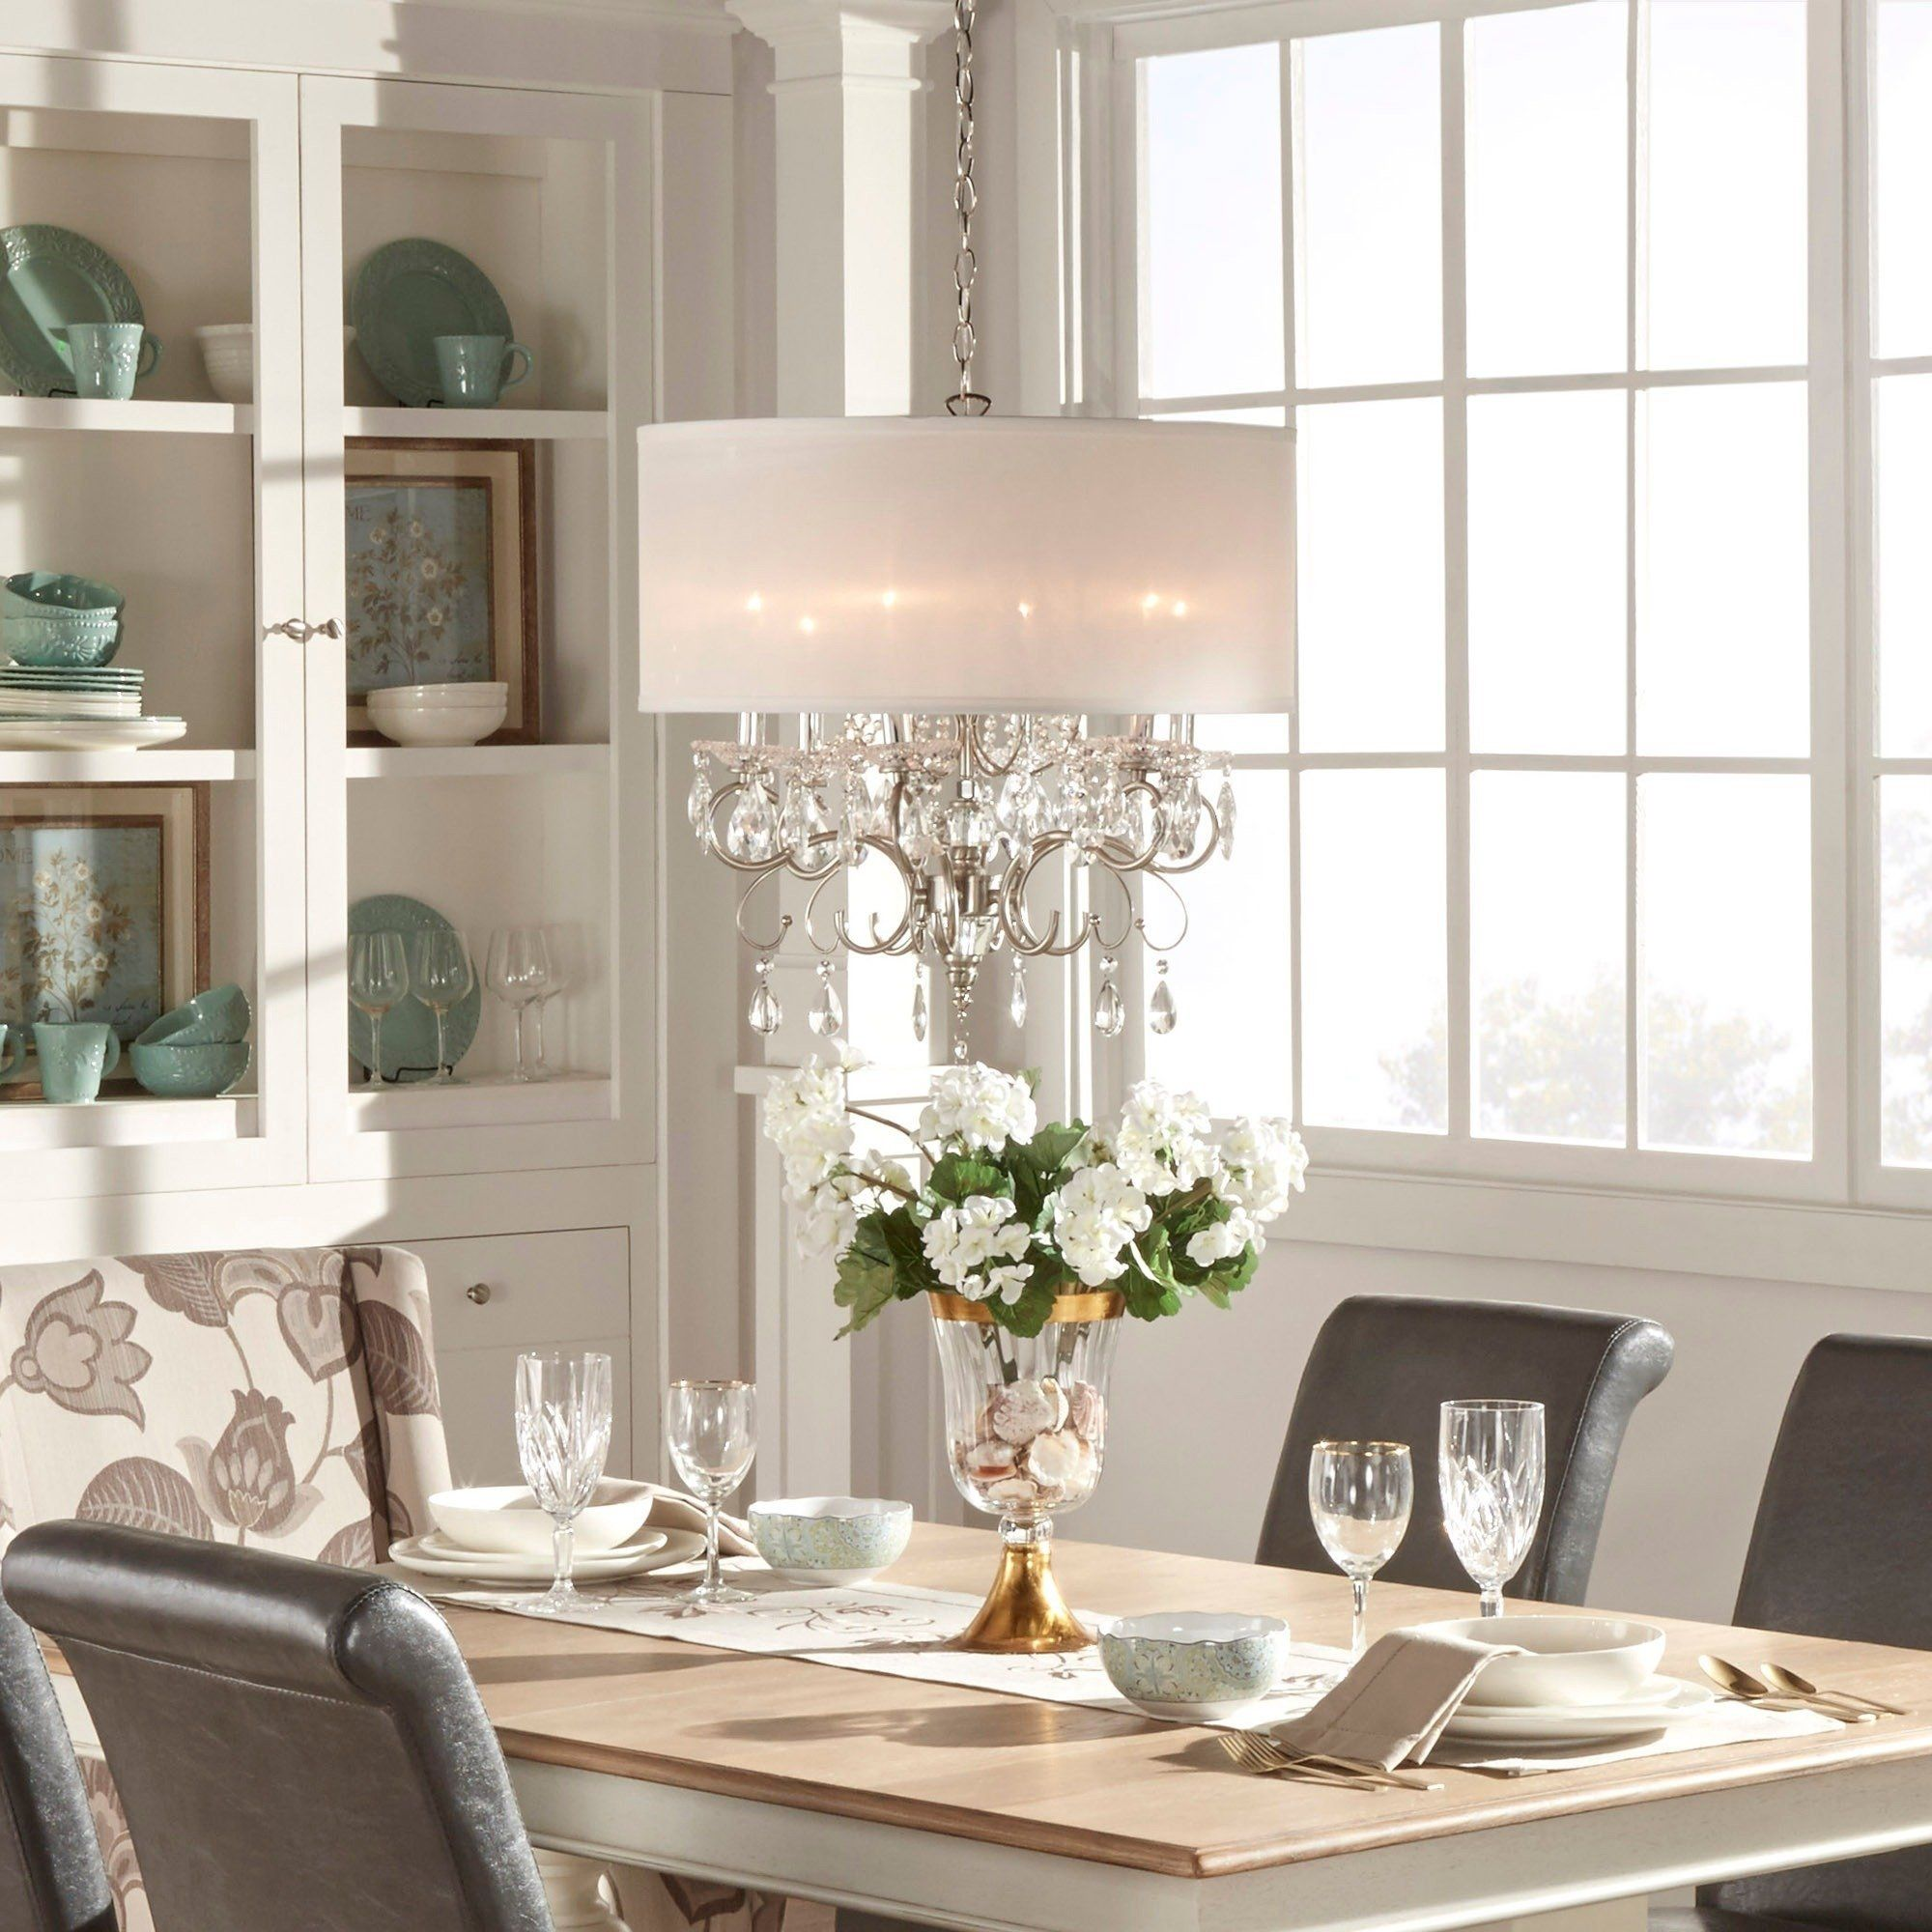 Can a Shabby Chic Chandelier Really Give Your Room a New Look?